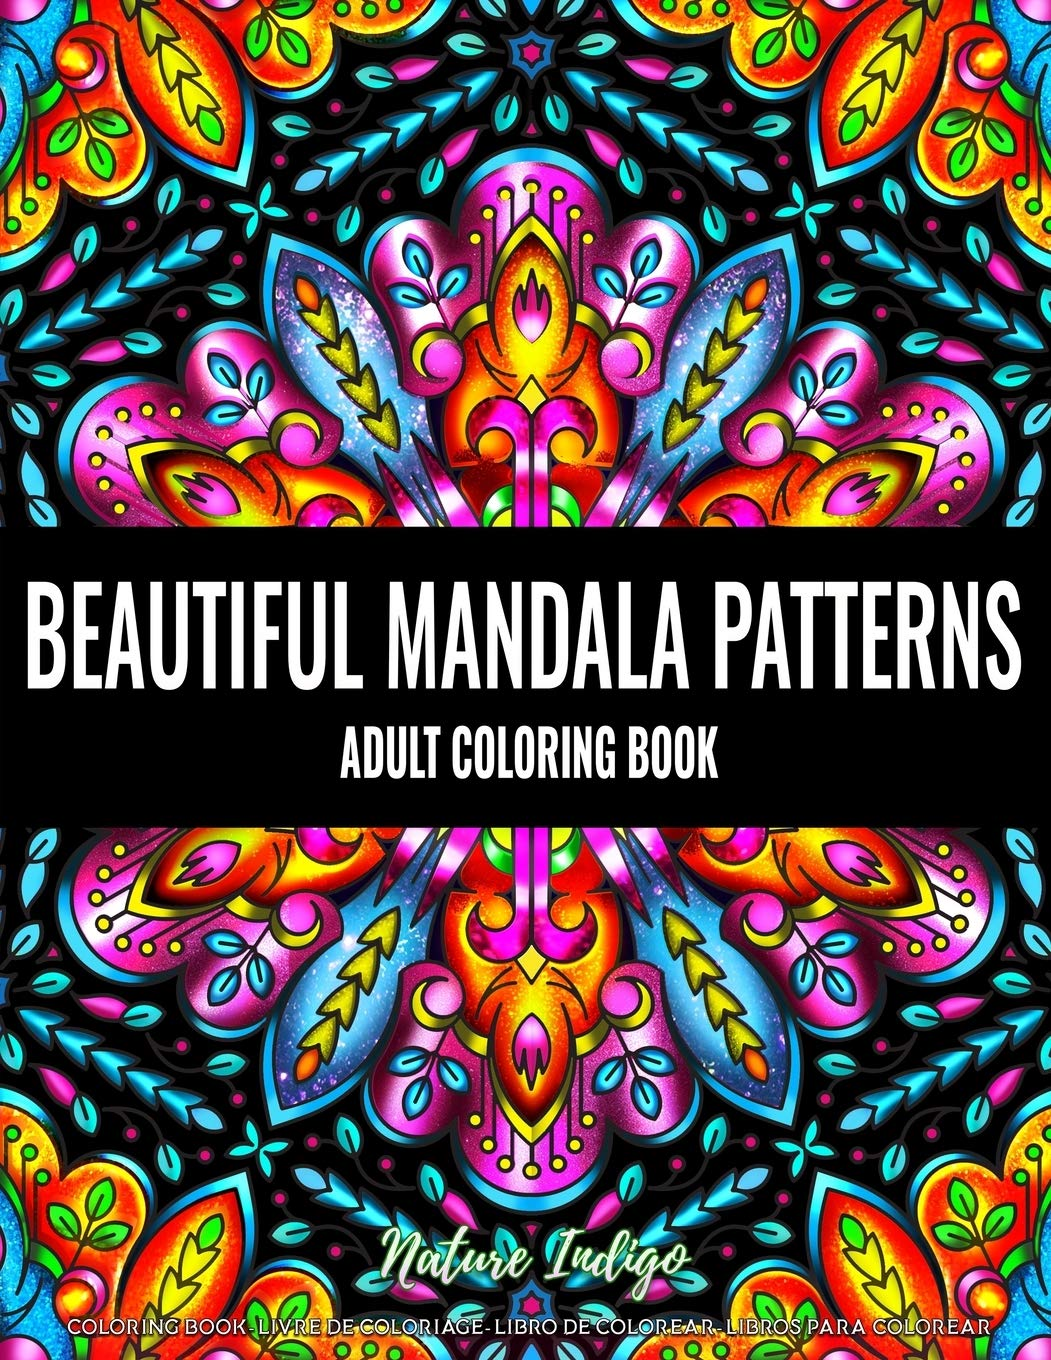 Image OfBeautiful Mandala Patterns: An Adult Coloring Book For Stress Relief And Relaxation